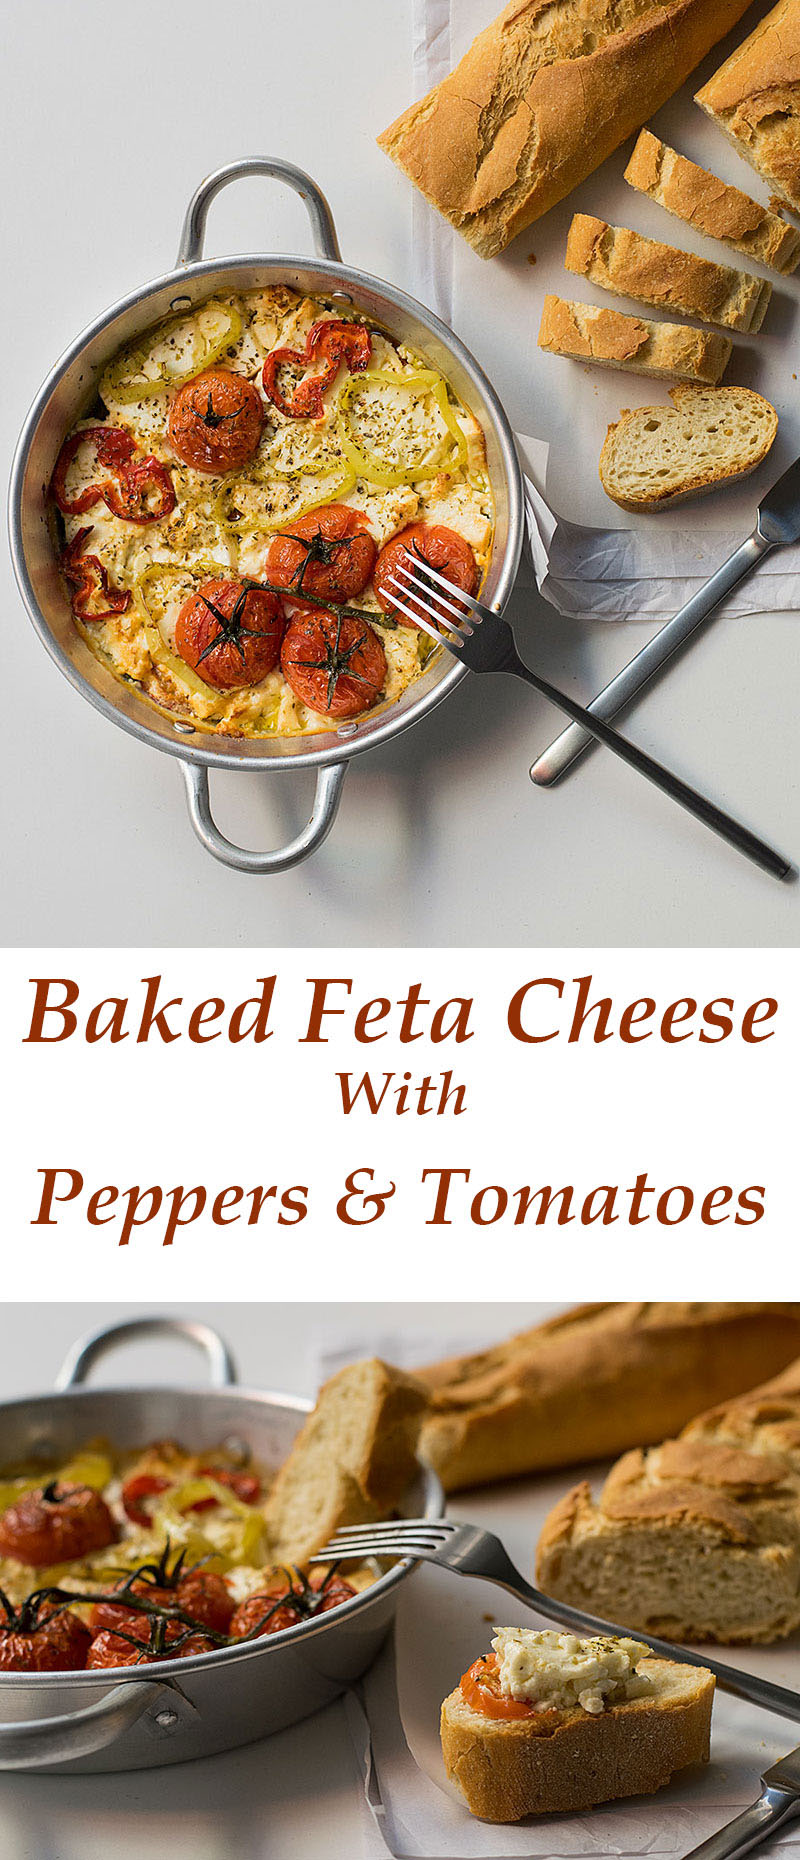 baked-feta-cheese-with-peppers-and-tomatoes-4